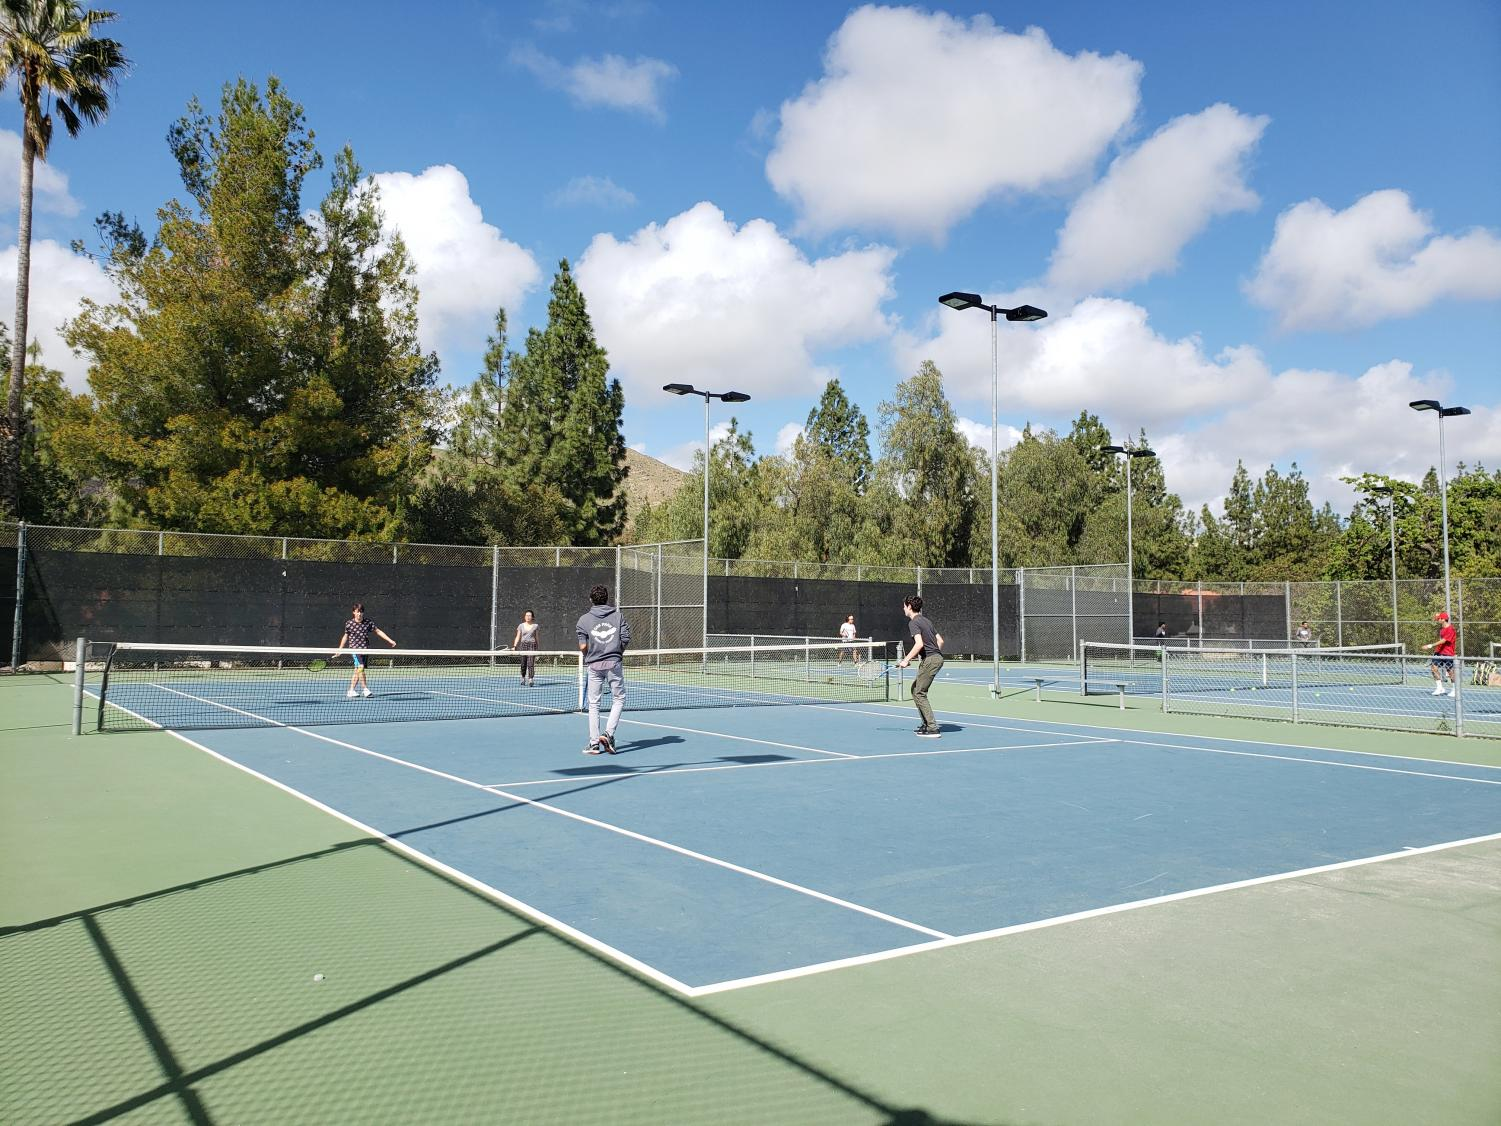 Boys' tennis team practices for CIF tournament. The varsity boys team was undefeated in the 2019 season.